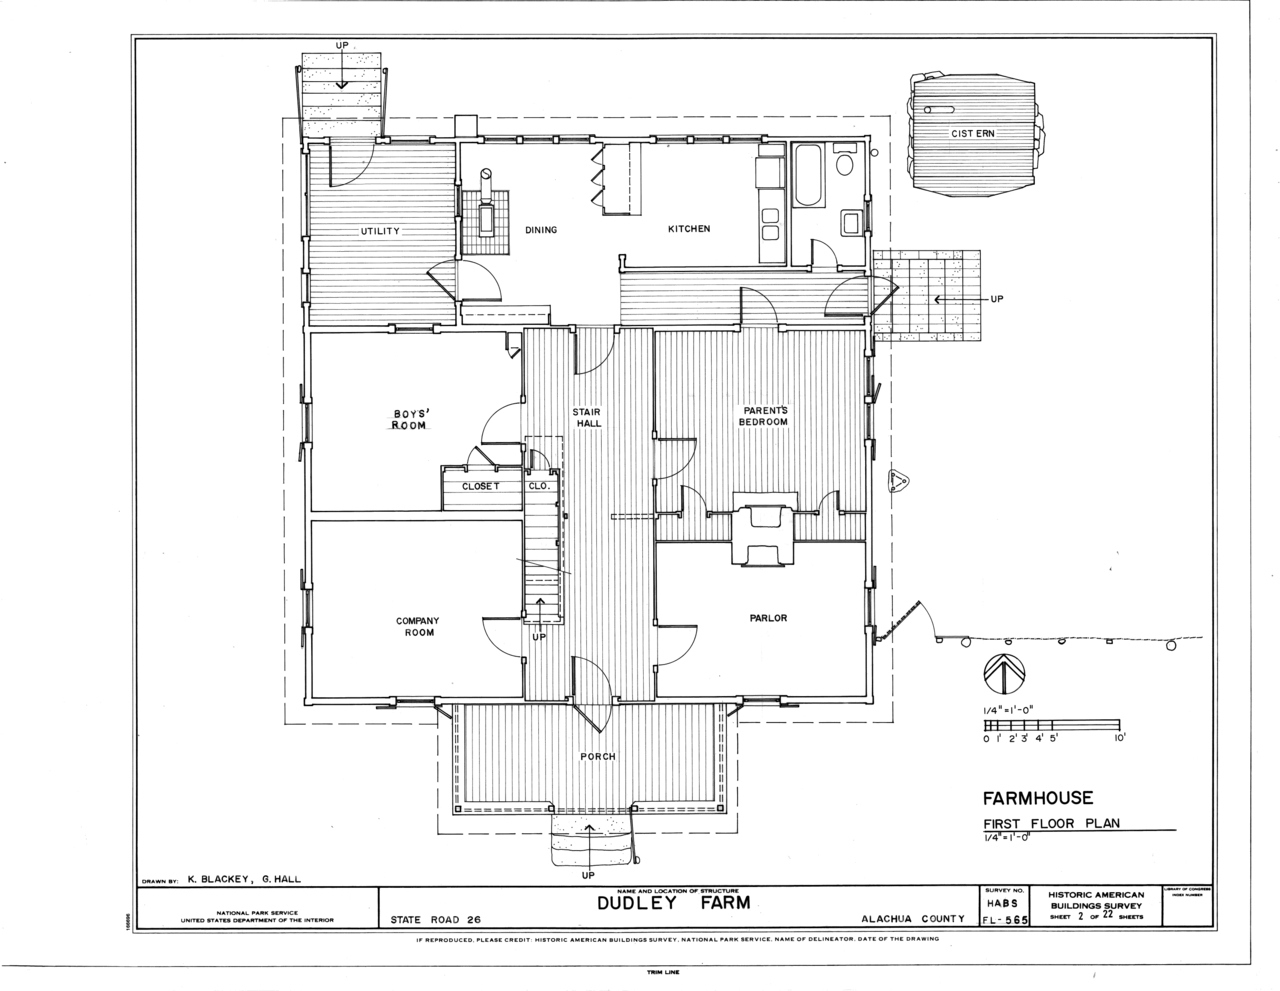 File Farmhouse First Floor Plan Dudley Farm Farmhouse